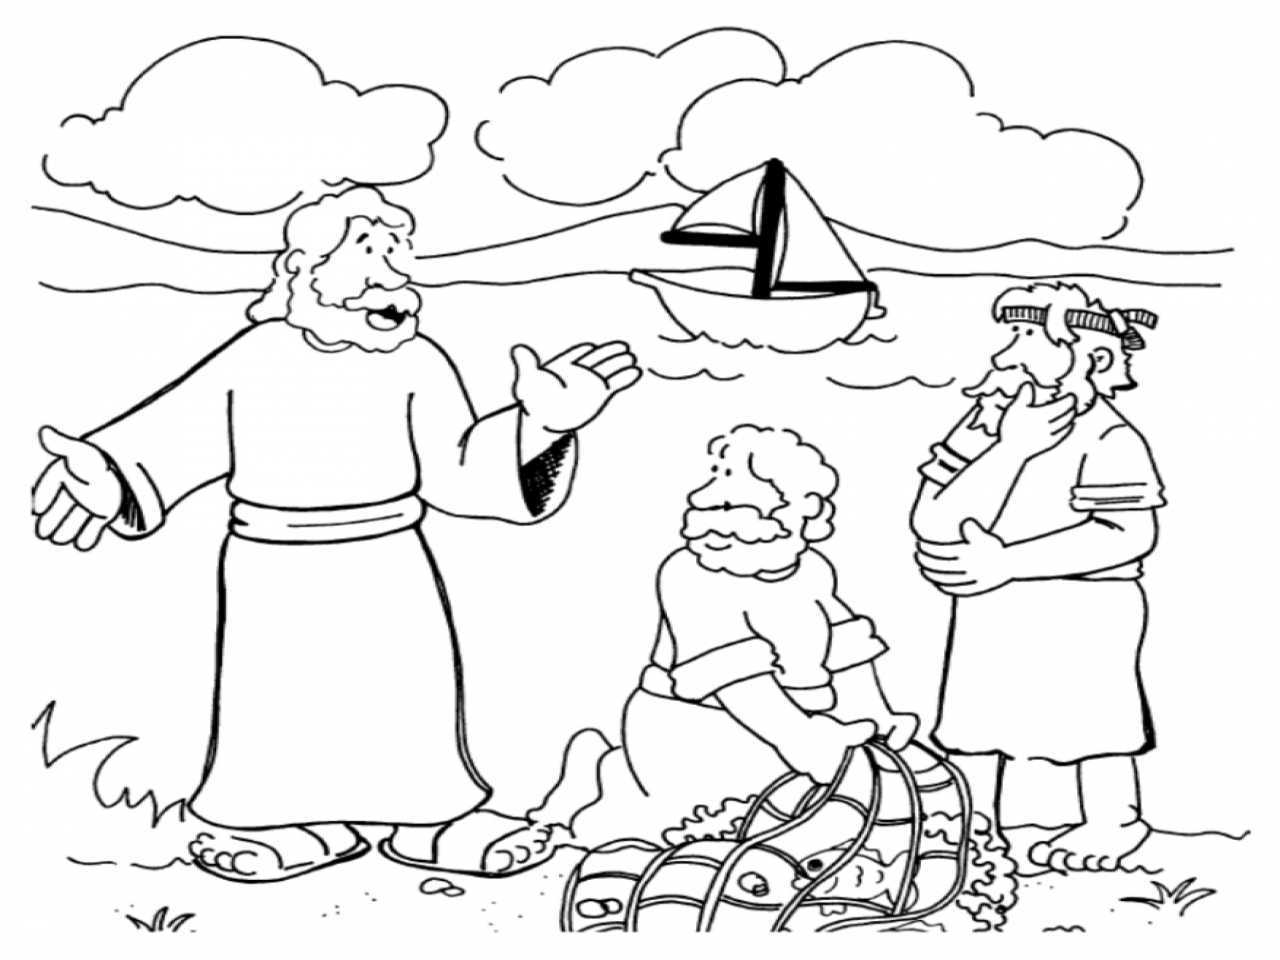 jesus and disciples coloring page jesus 12 disciples coloring page sunday school coloring jesus coloring and page disciples